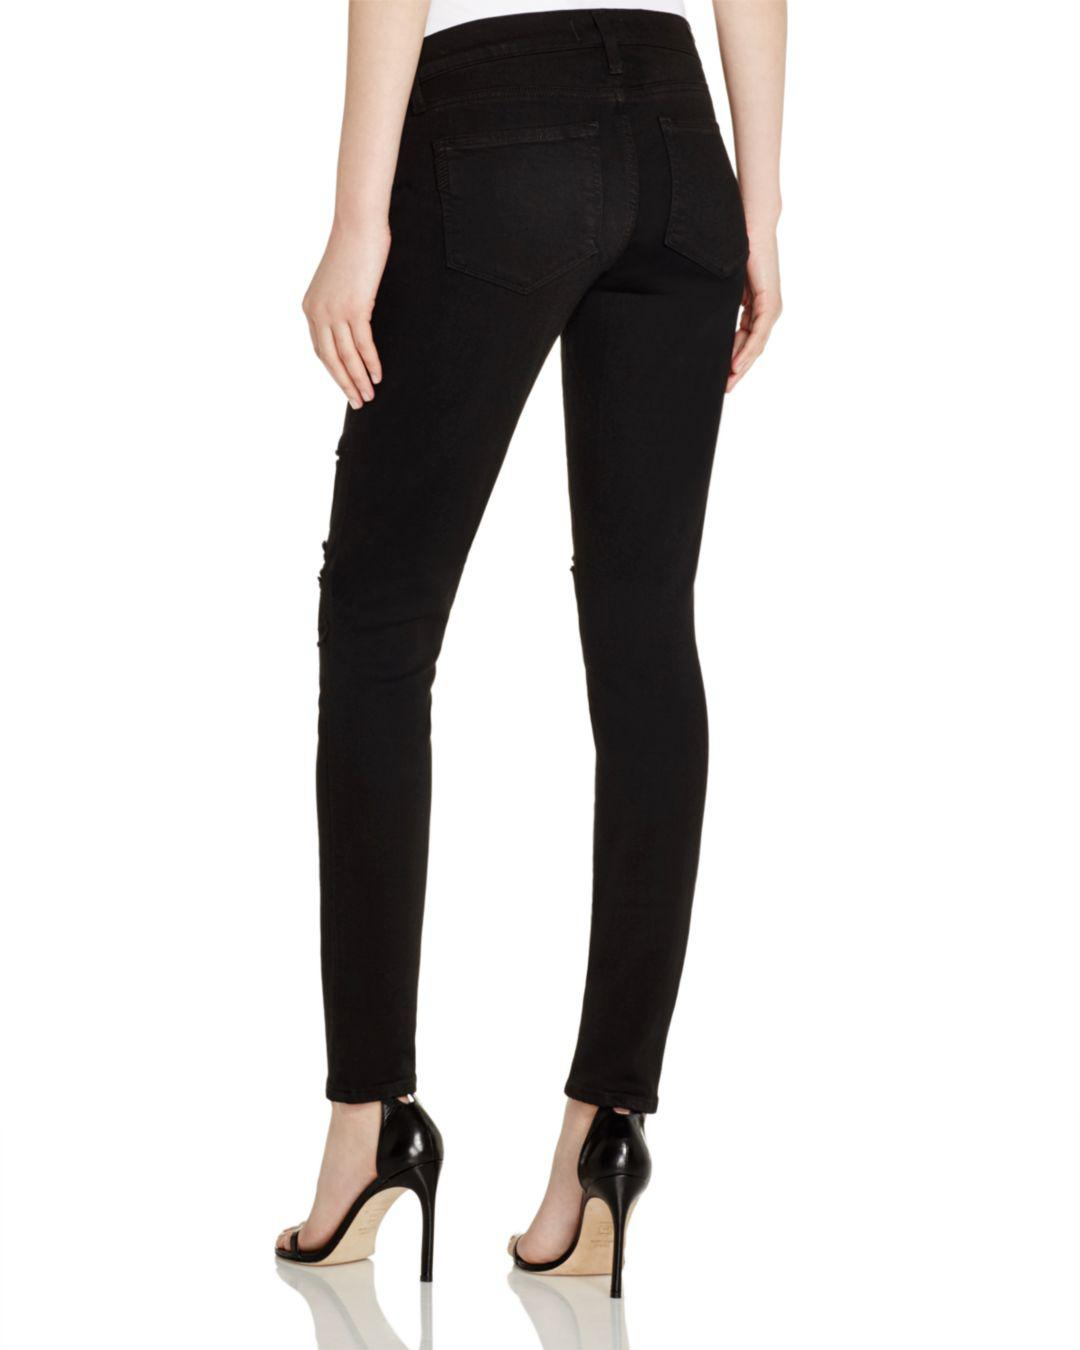 2e5a101722b3a Lyst - PAIGE Denim Verdugo Skinny Maternity Jeans In Black Shadow  Destructed in Black